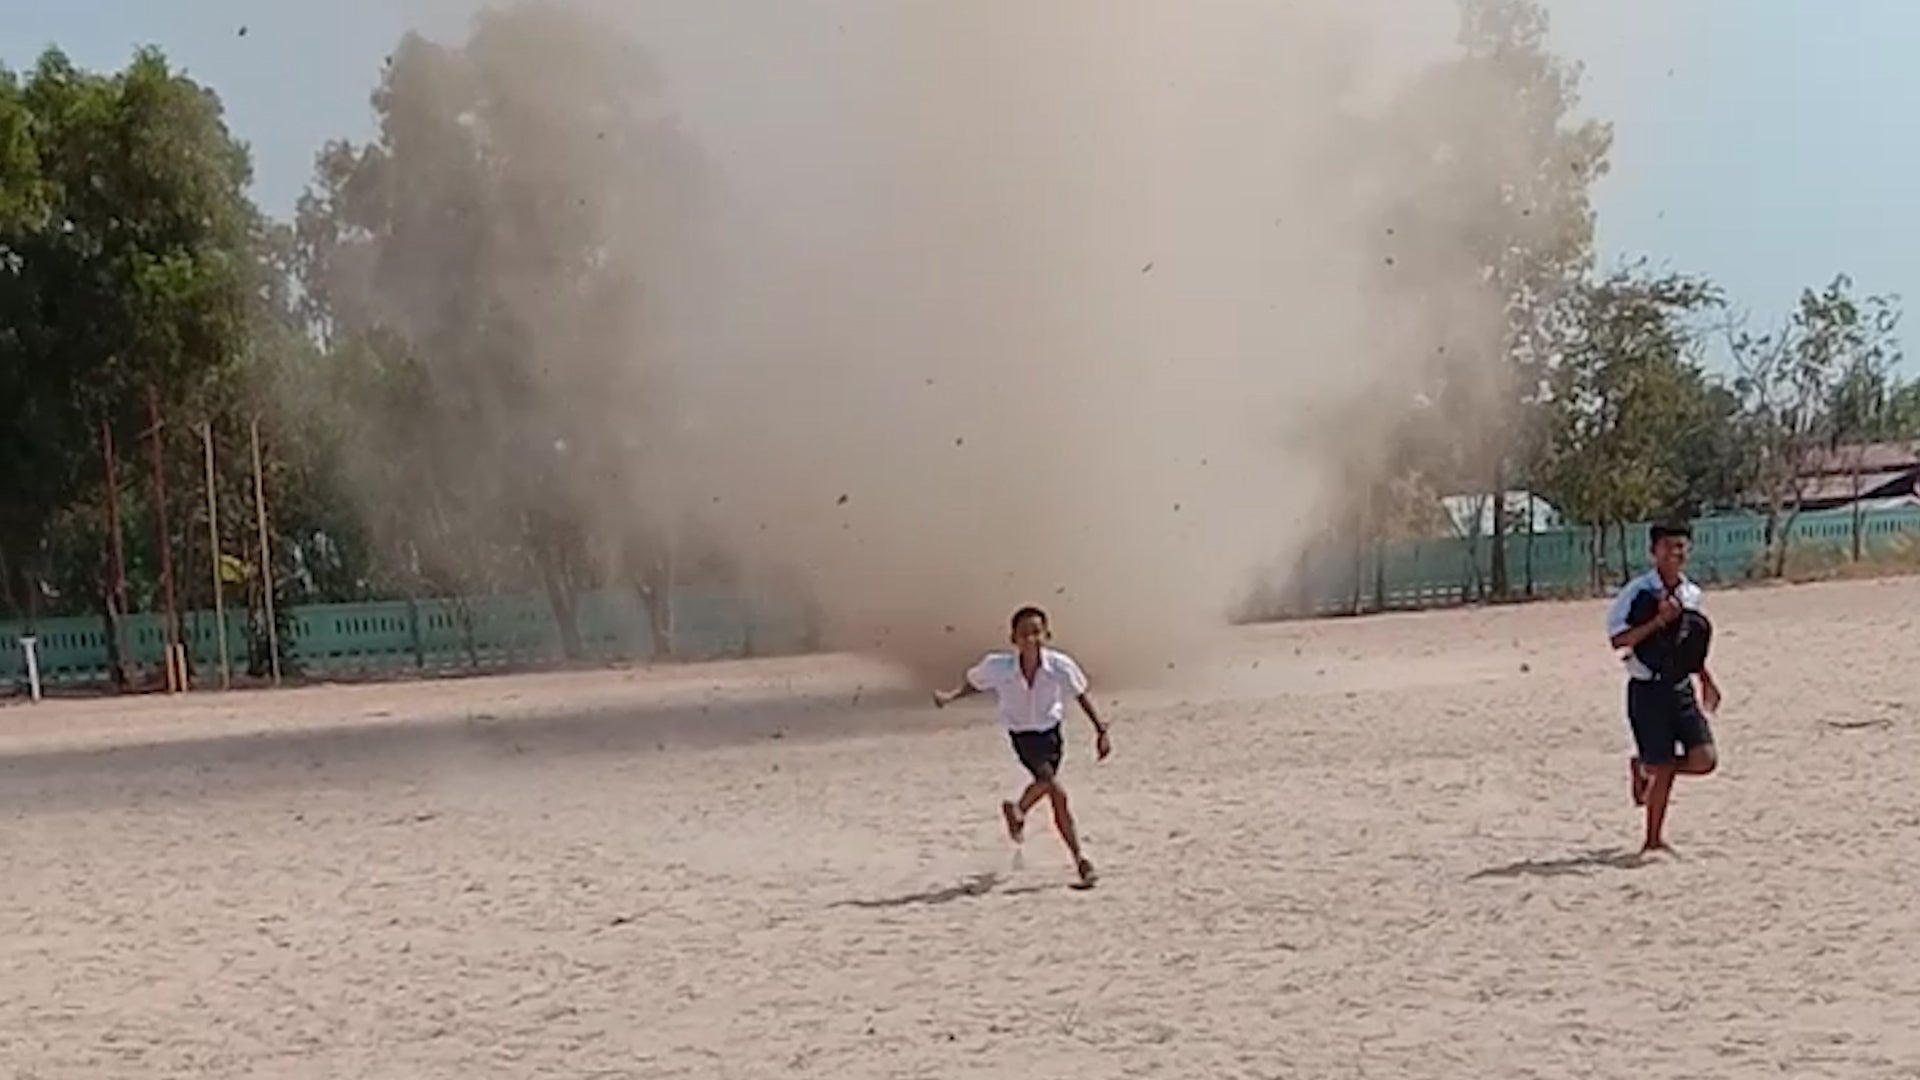 Students in Thailand Scurry as Dust Devil Winds Through Field